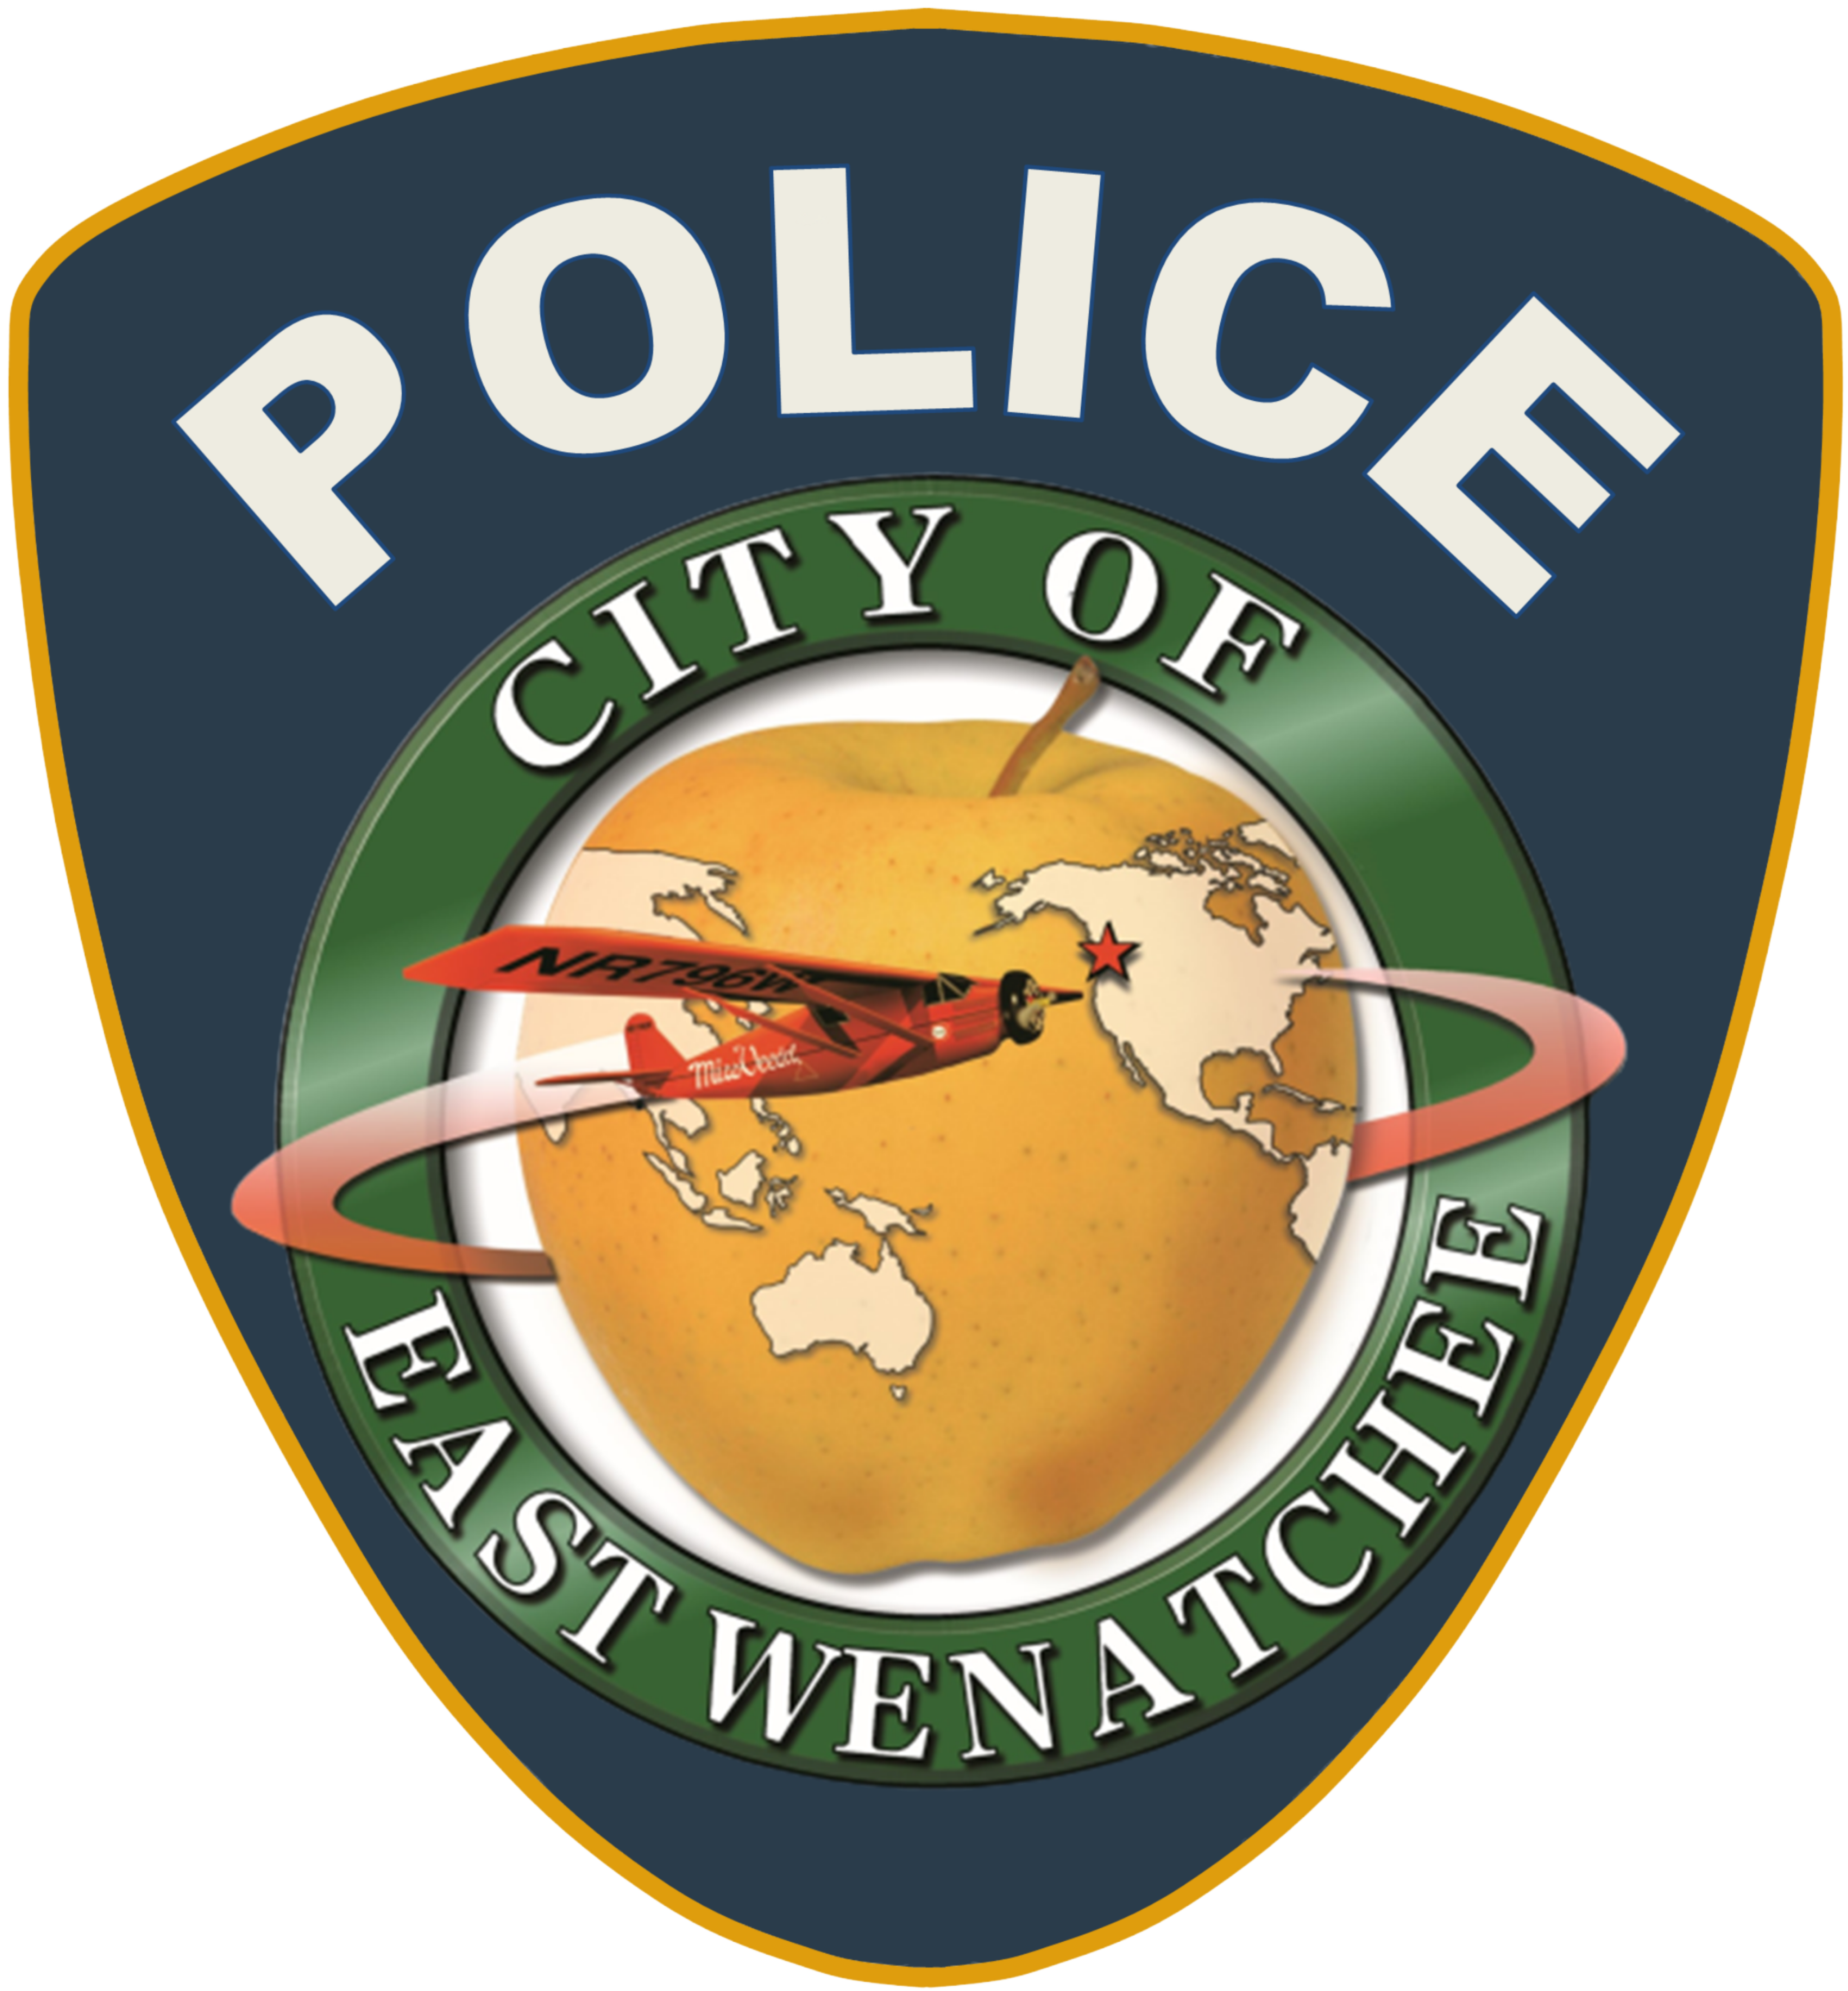 East Wenatchee's Logo in the middle of a dark blue police badge, POLICE written above it in white